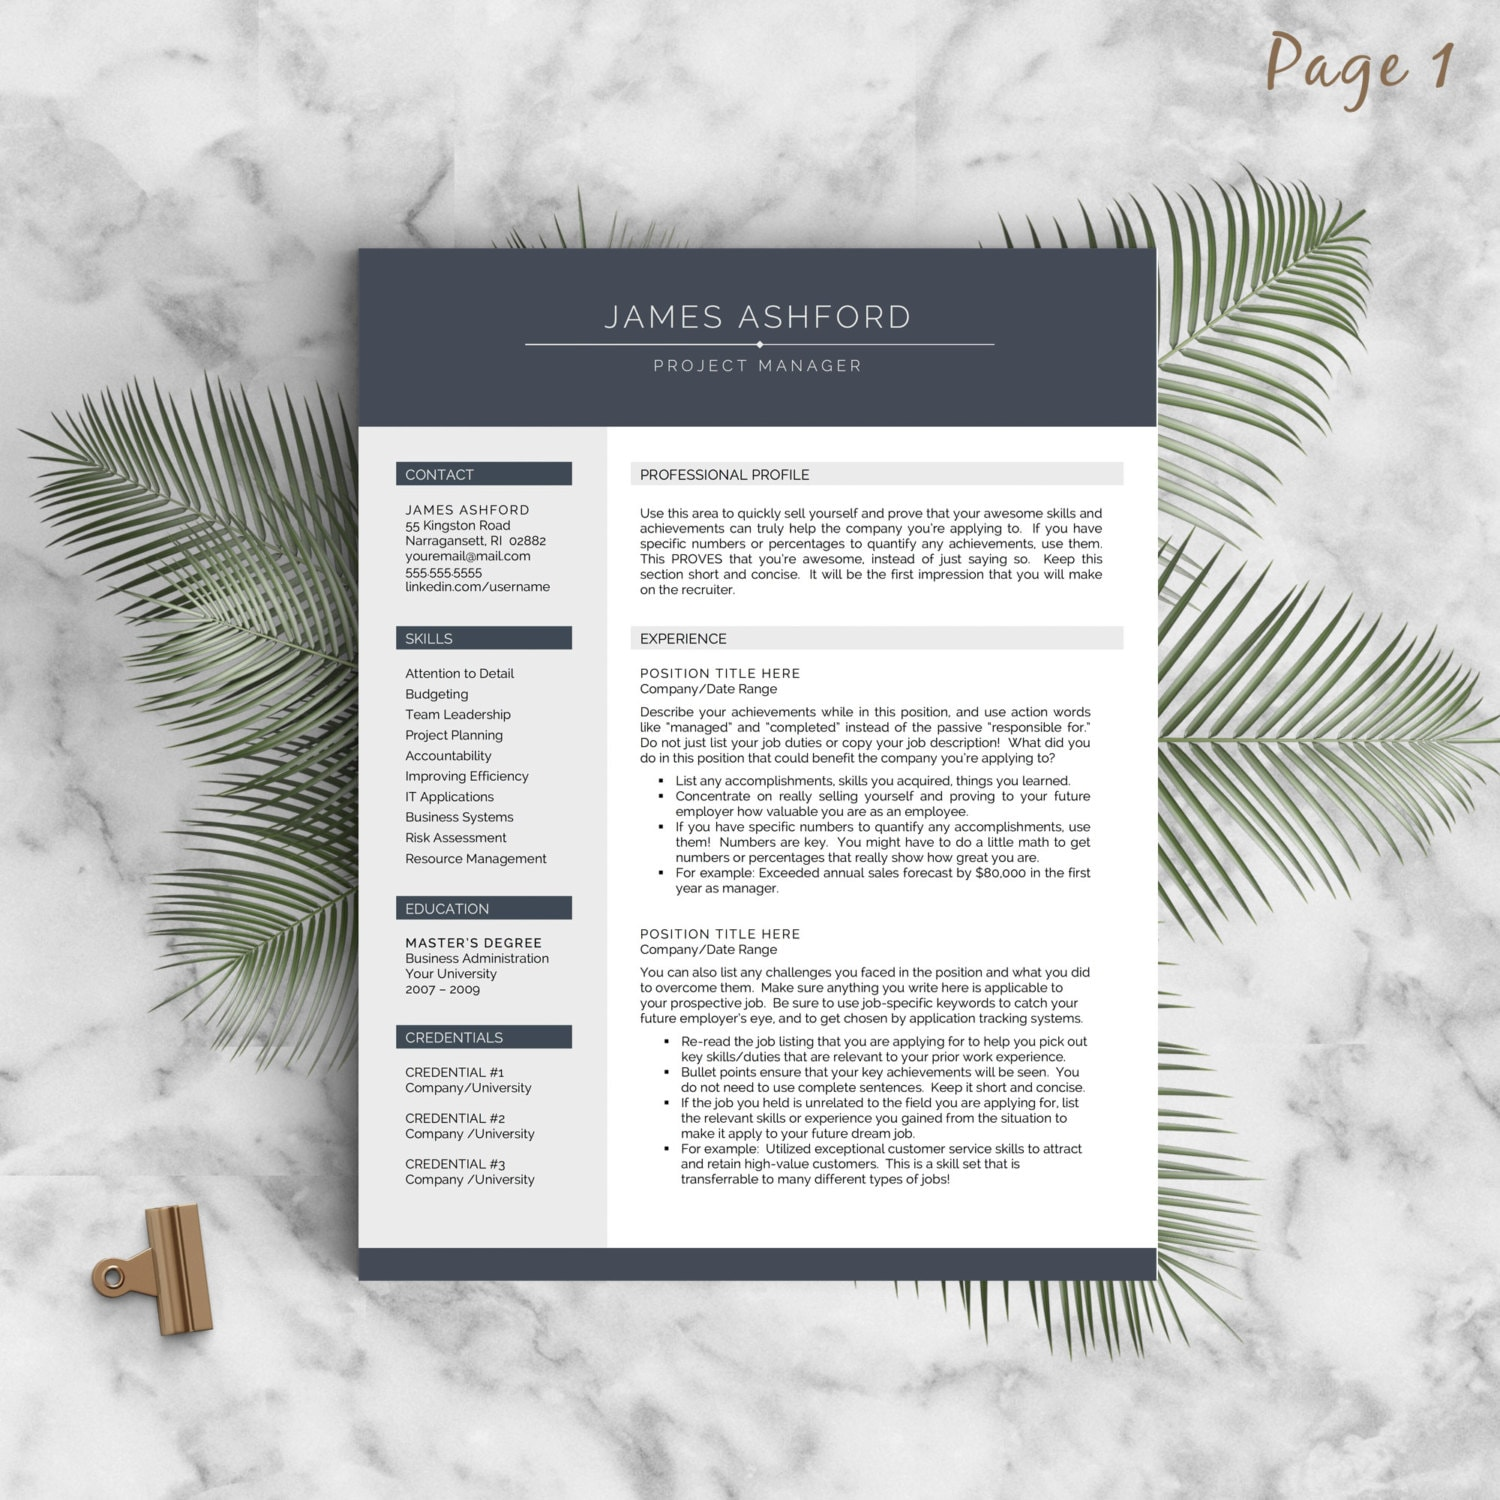 Modern Resume Template For Word 1 3 Page Resume Cover: Modern Resume Template For Word And Pages 1-3 Page Resume